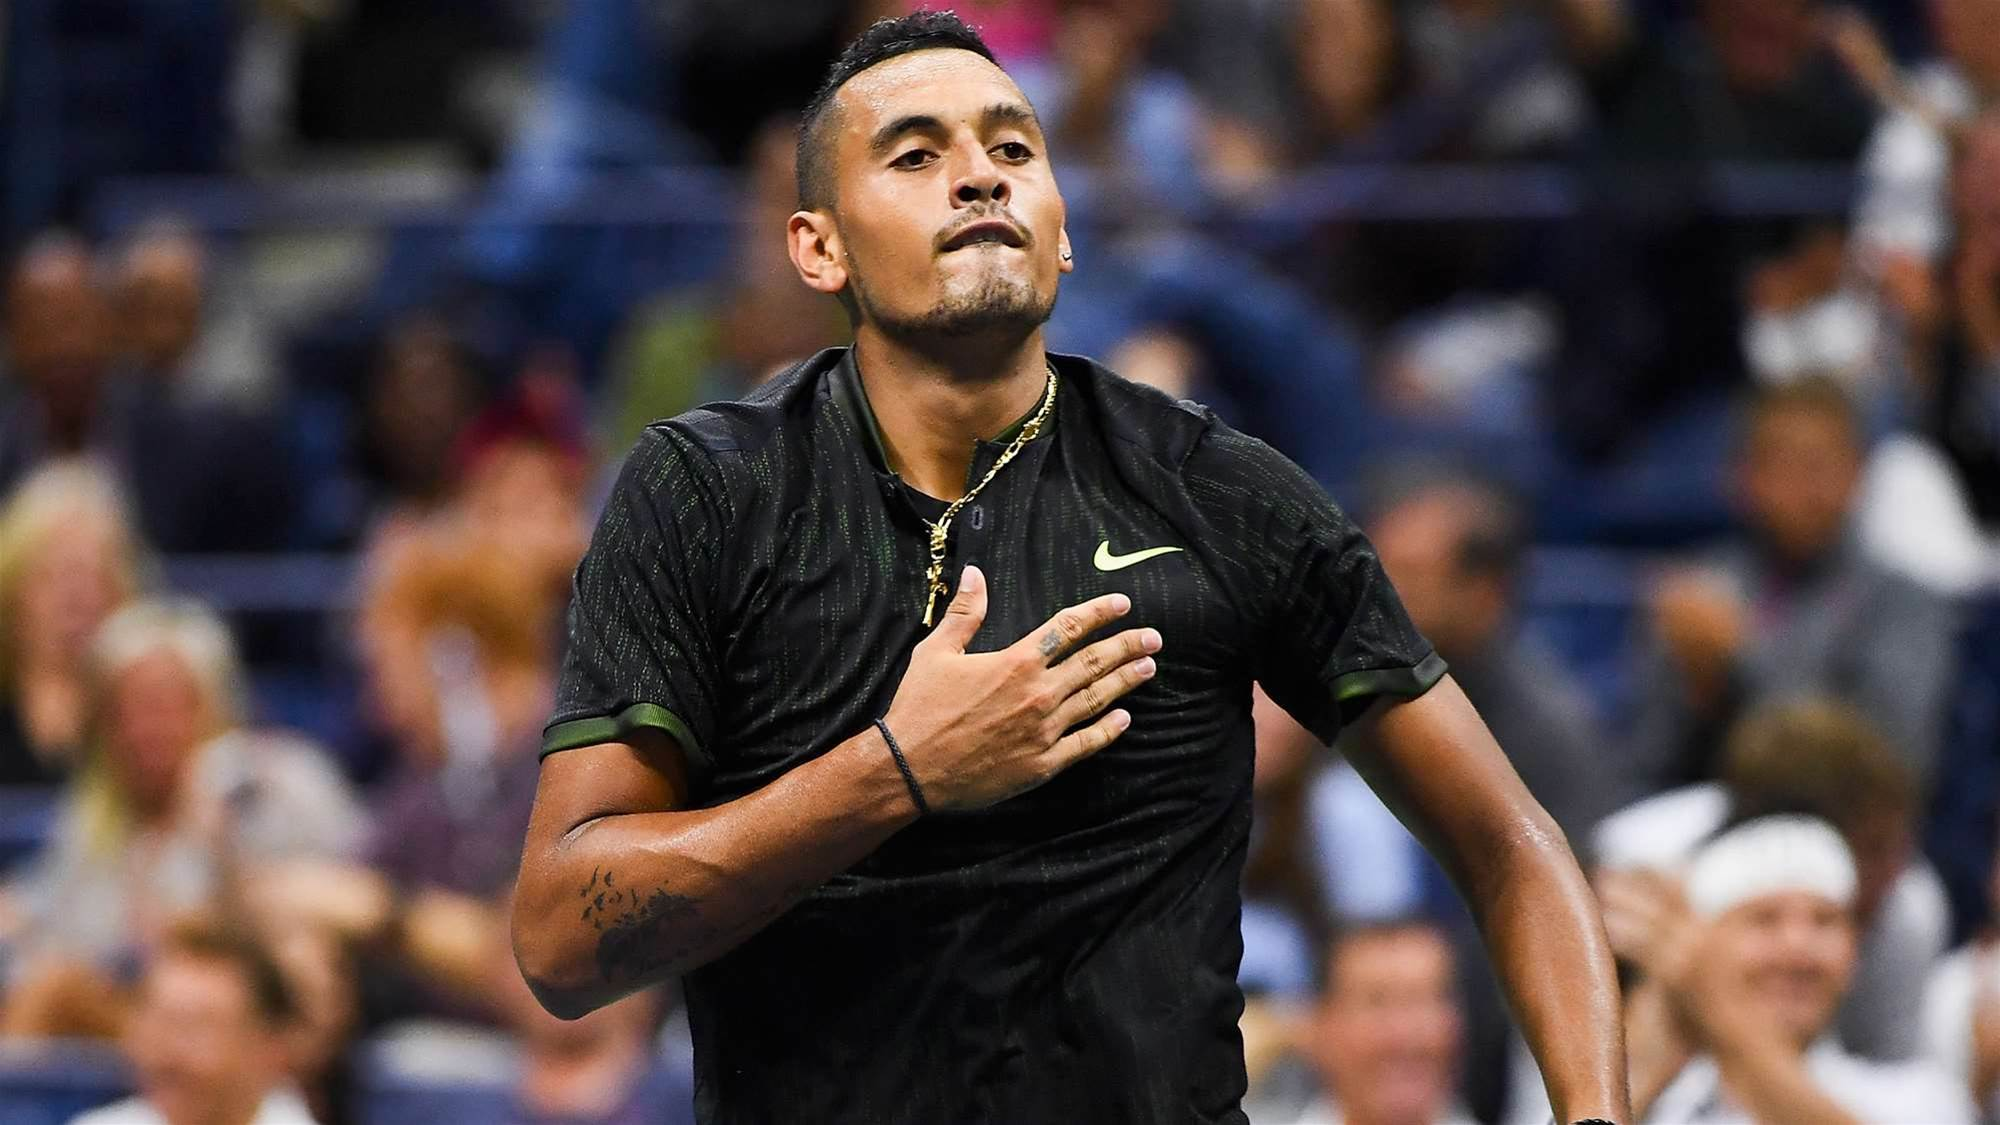 Kyrgios has a huge dig at coach